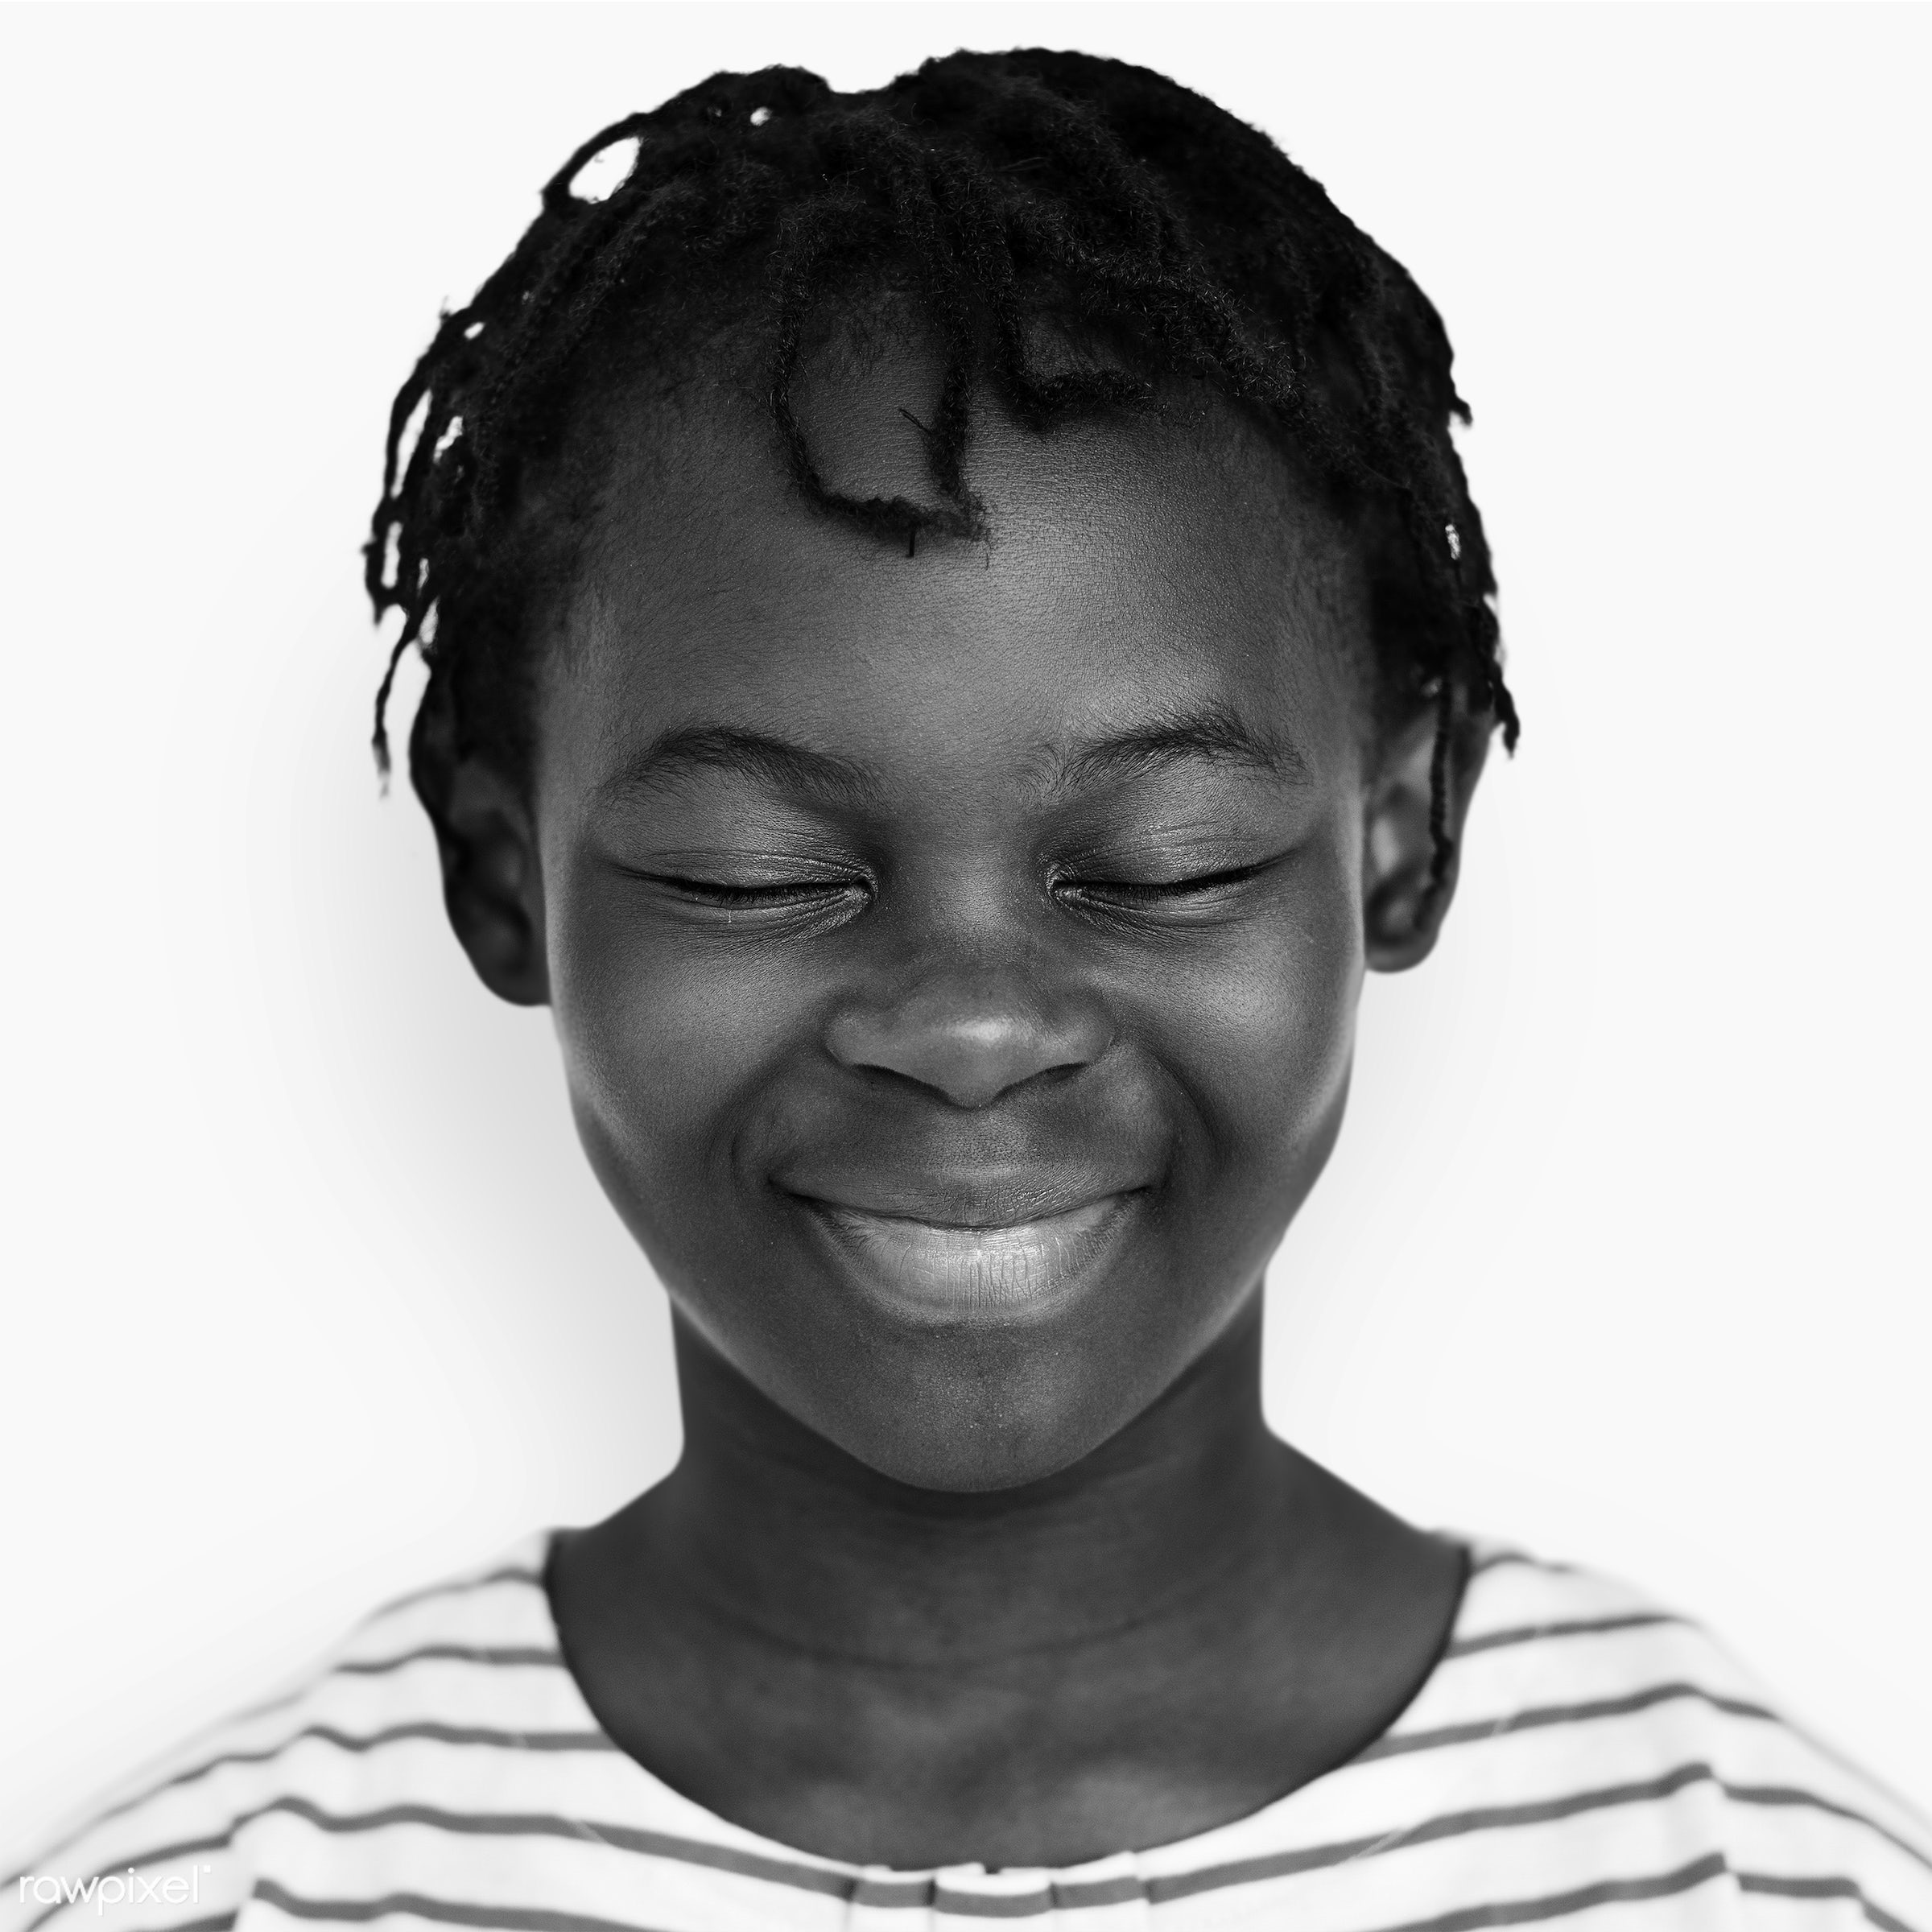 Portrait of a Congolese kid - african, african descent, alone, black and white, casual, cheerful, child, closed eyes,...